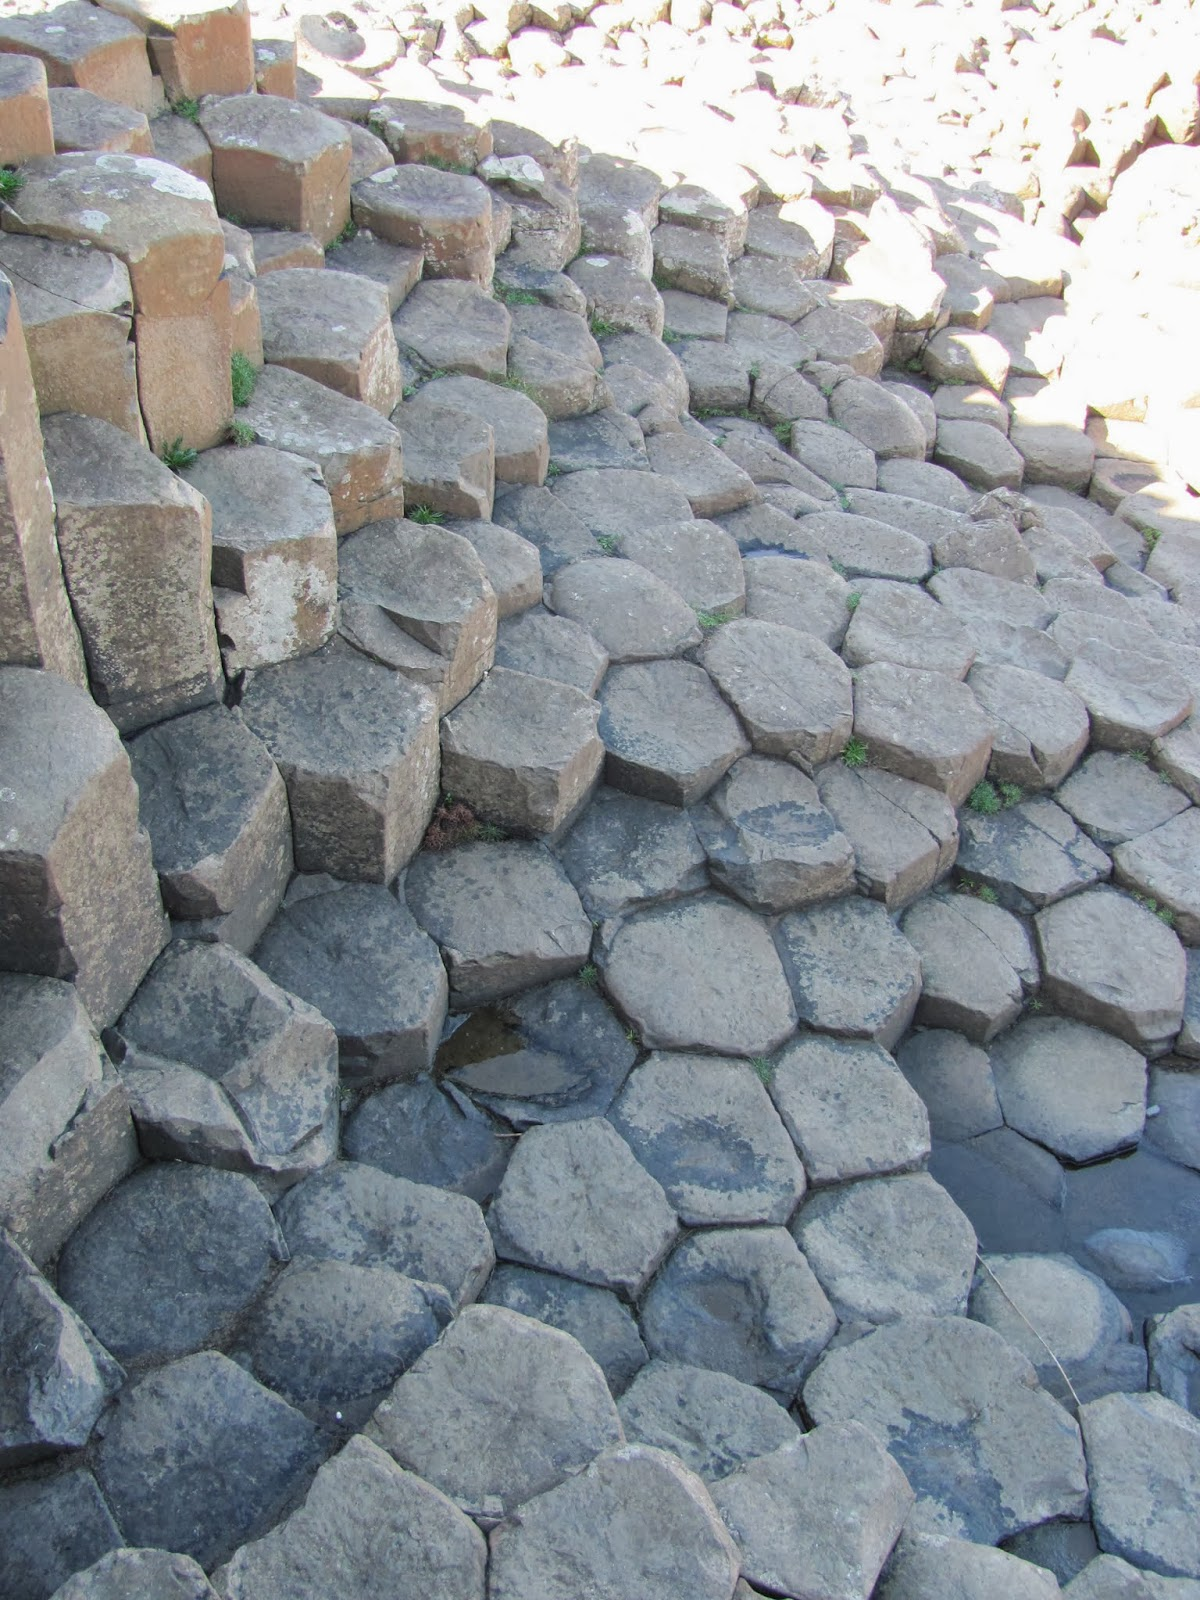 Giant's Causeway stones close up